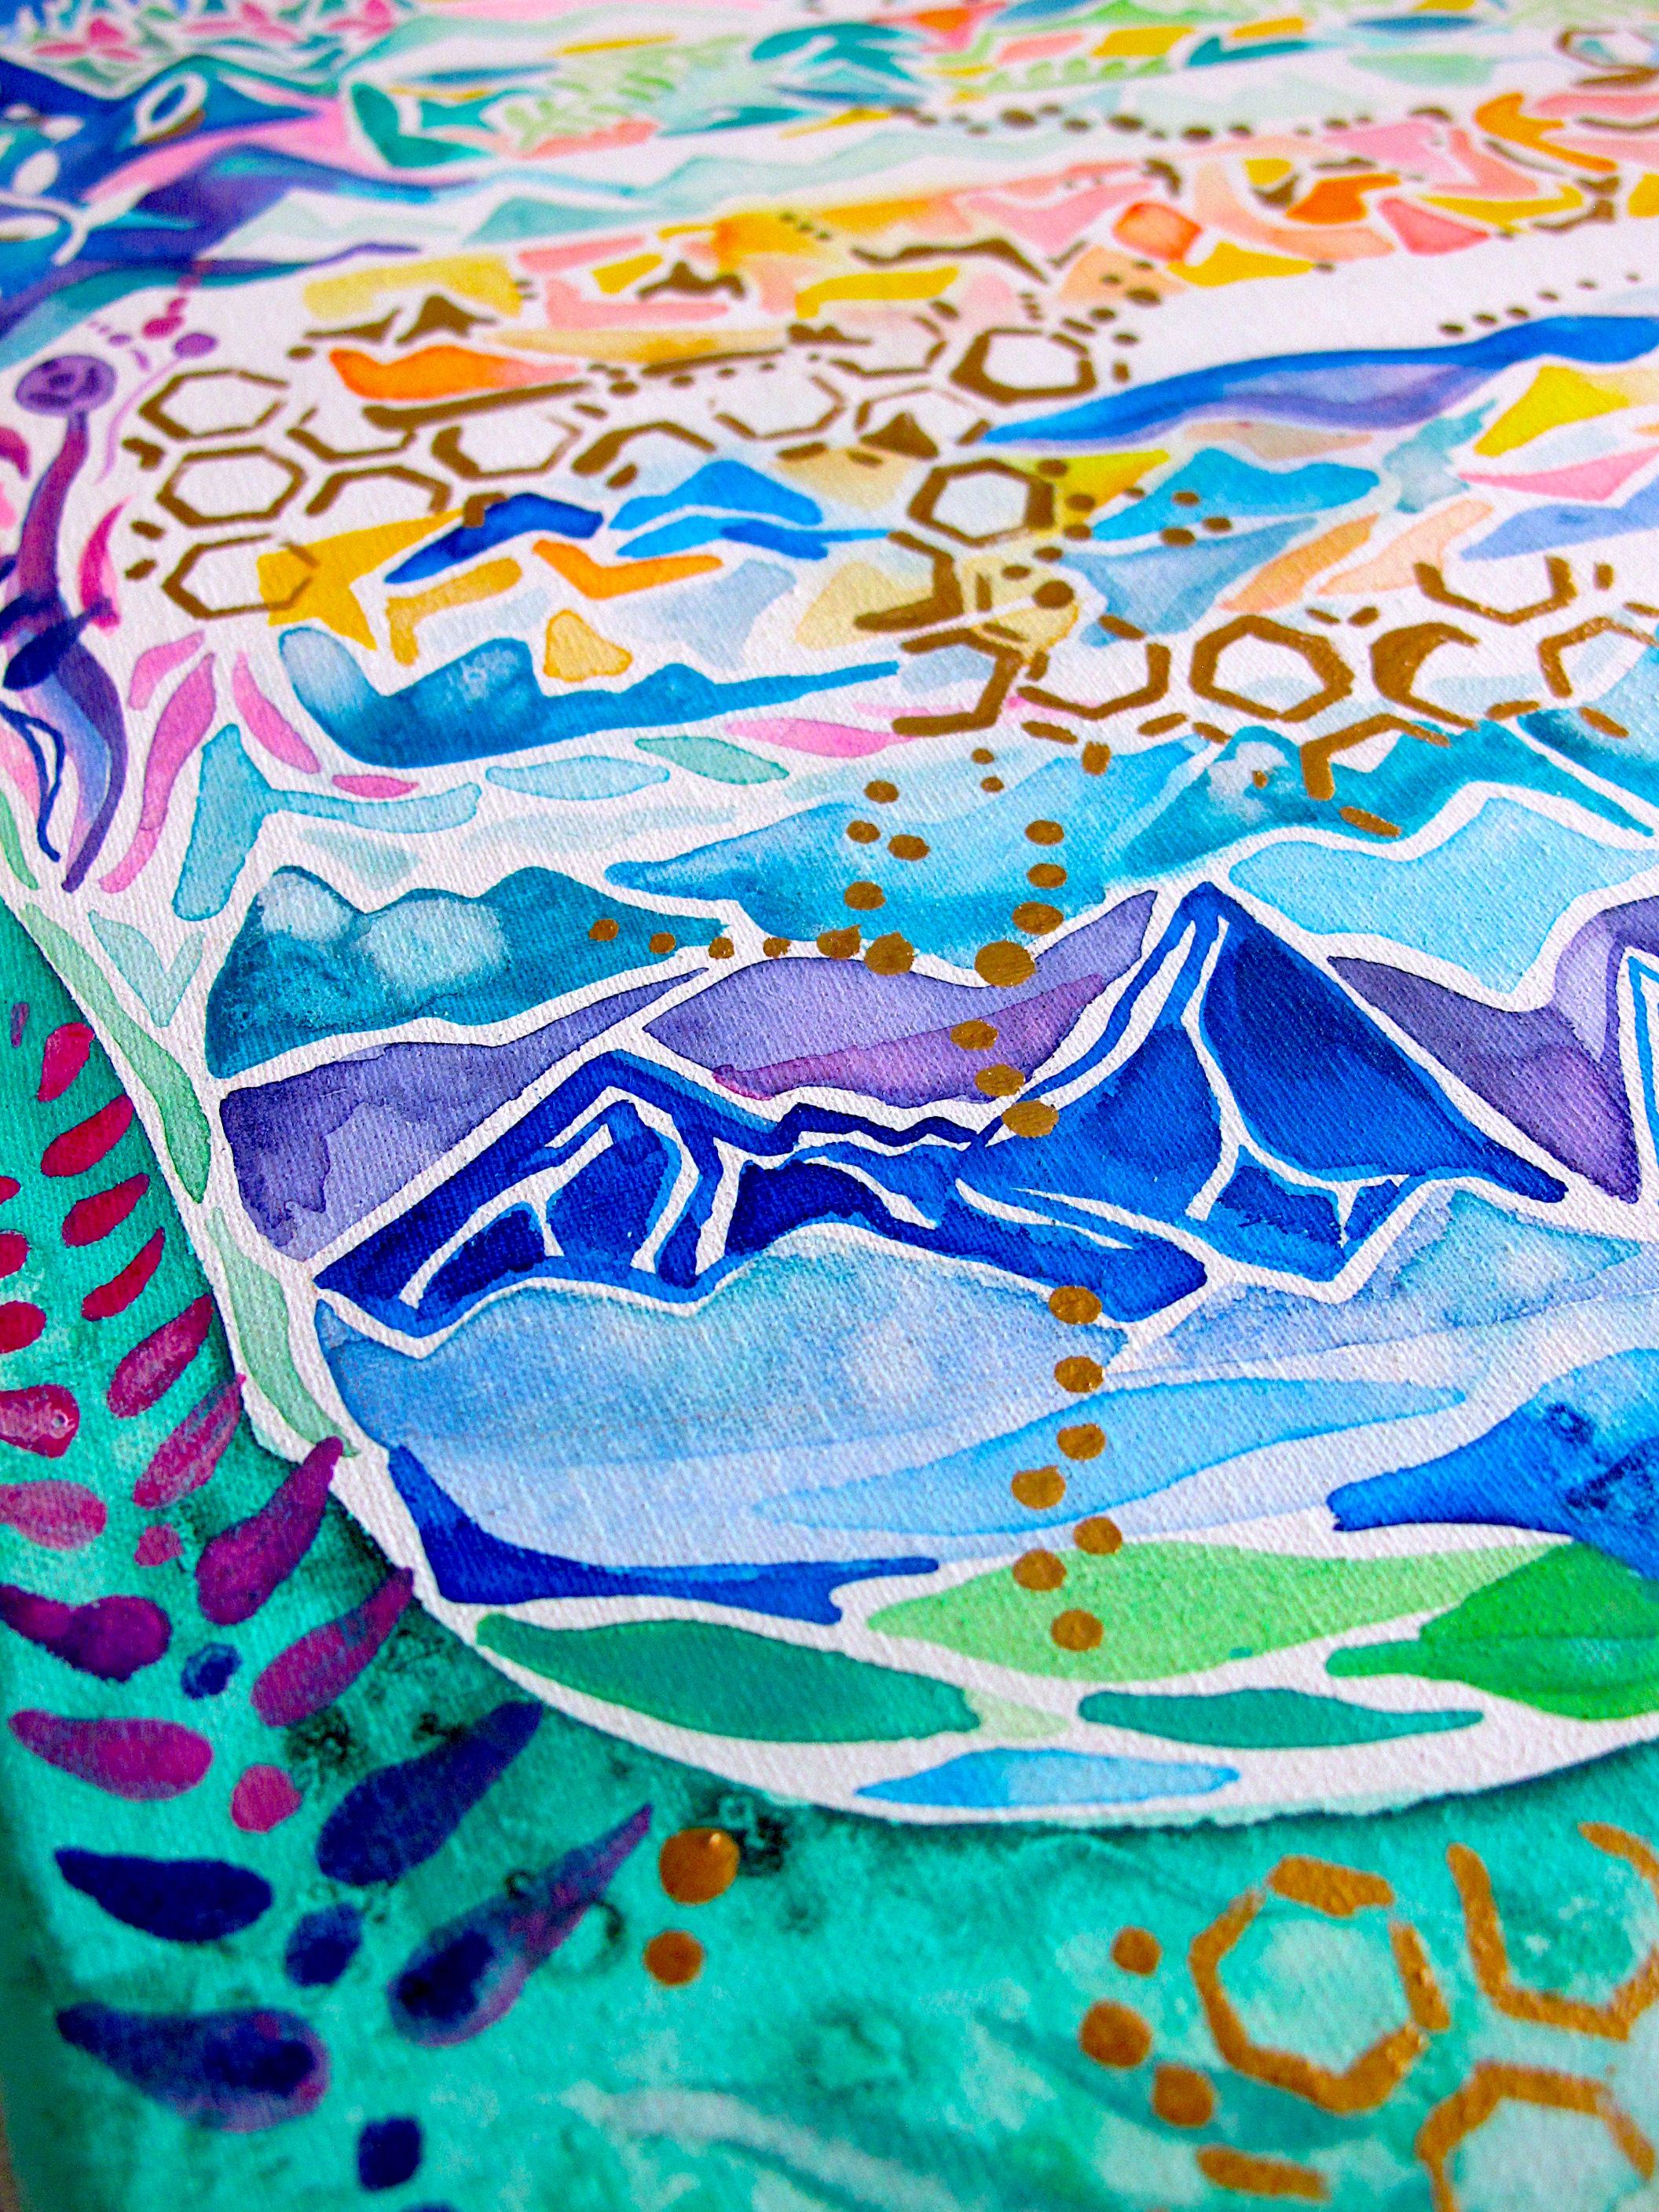 Mountain Honey Details_Mare Simmons (1).